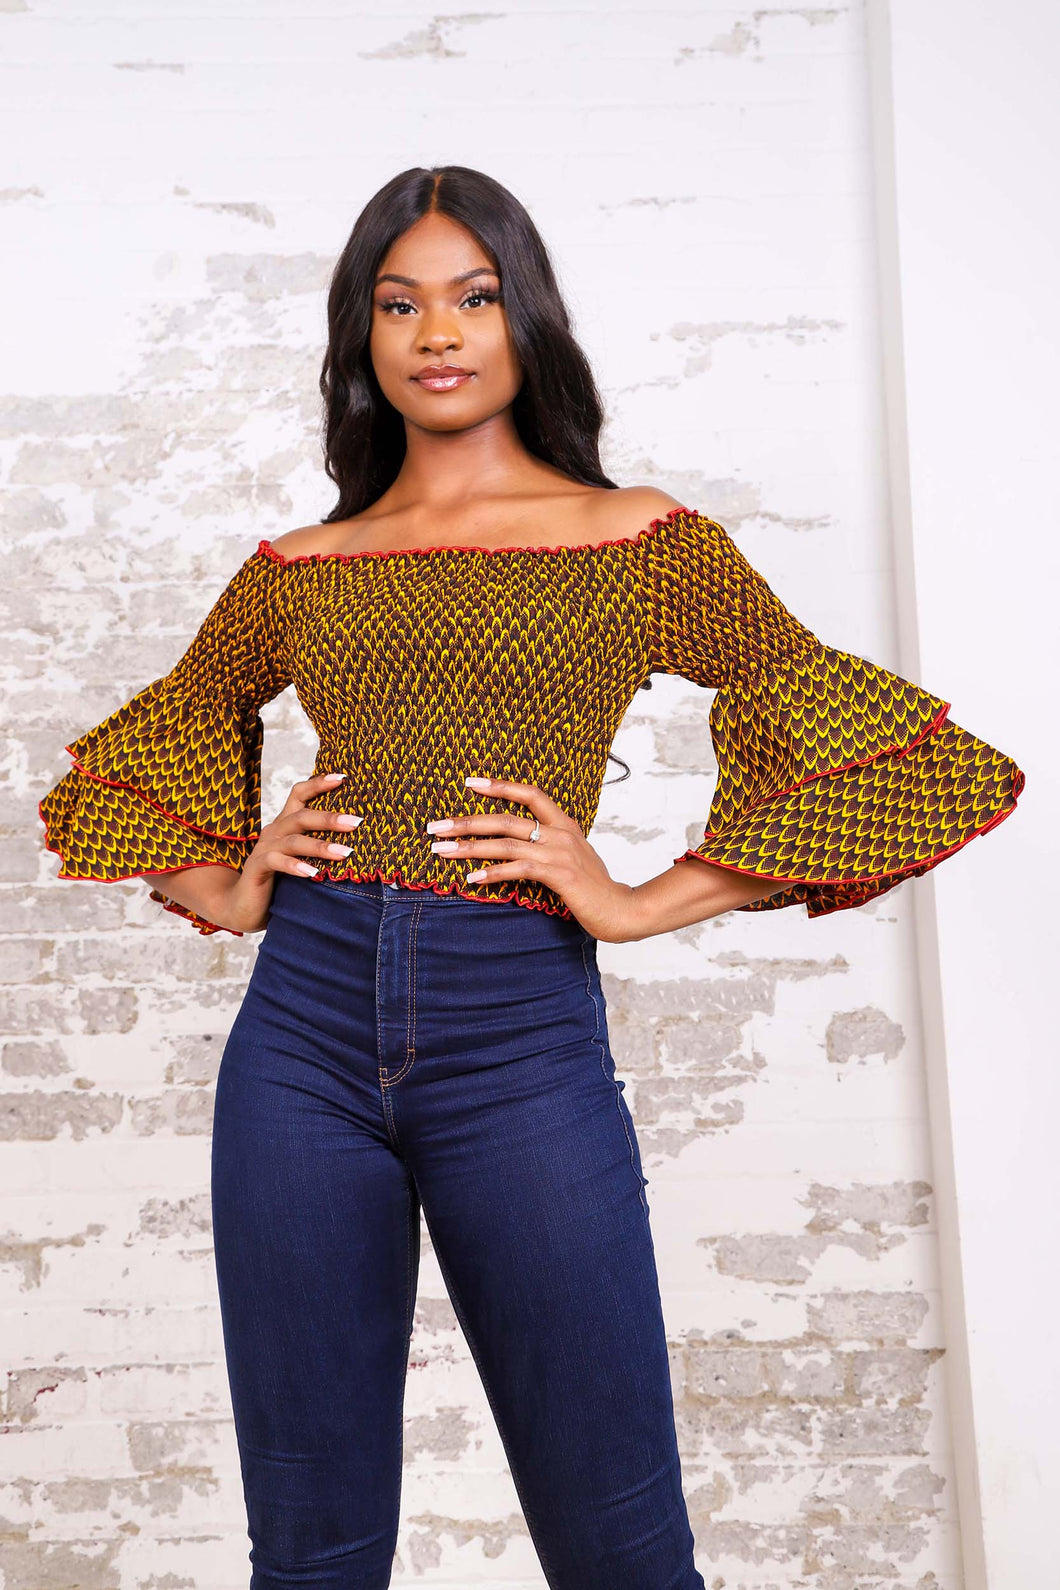 BENITA AFRICAN PRINT WOMEN'S STRETCH CROP TOP - KEJEO DESIGNS